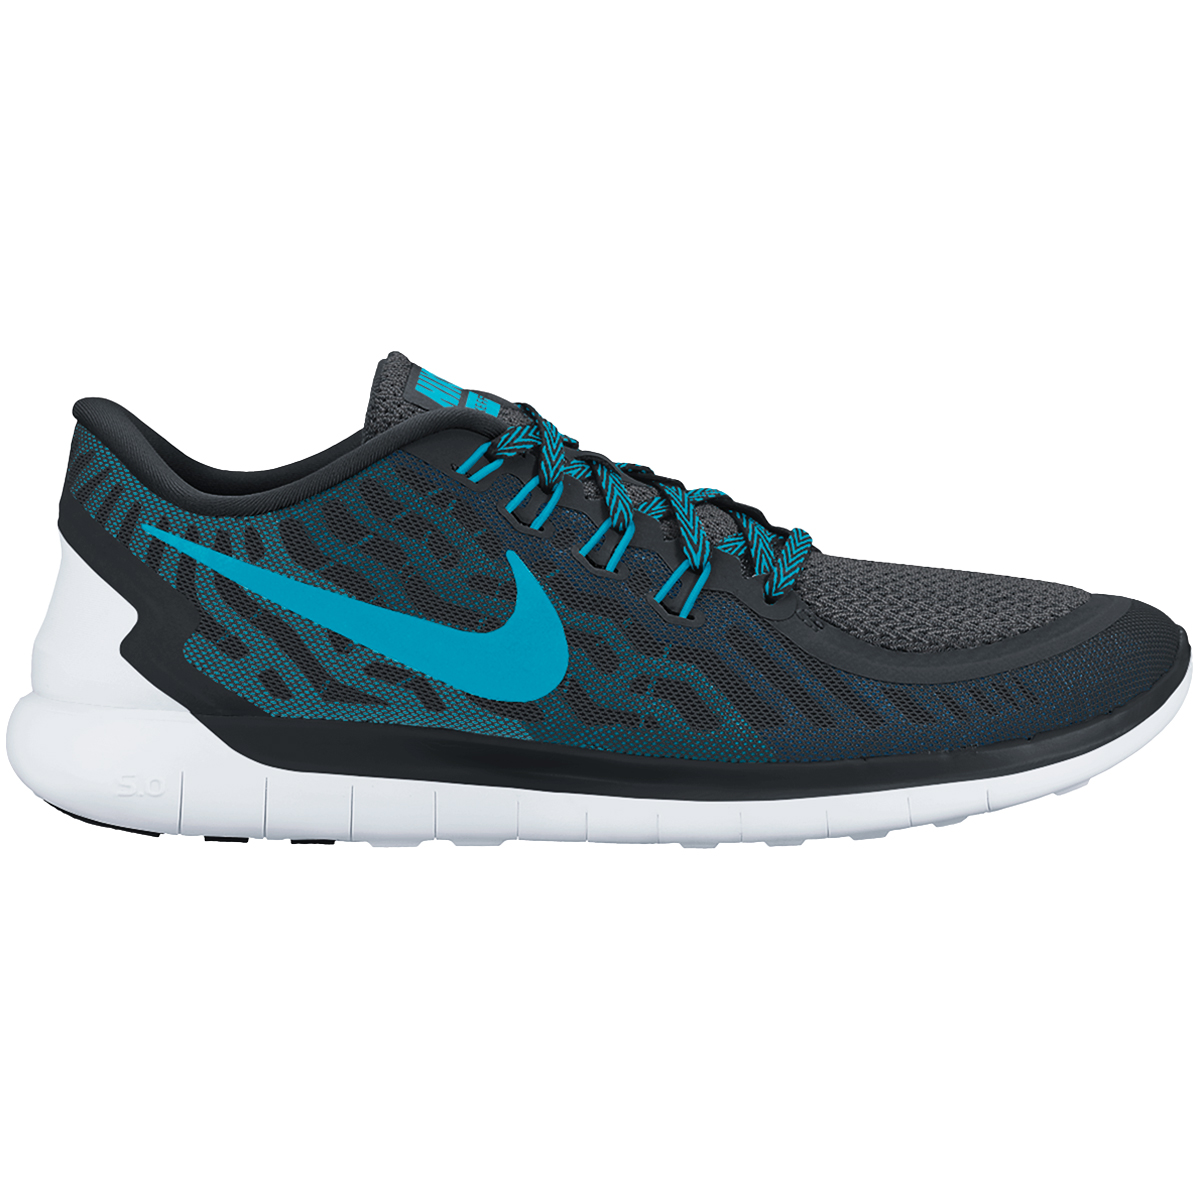 nike free 5 0 men 39 s training shoes black dark electric blue blue lagoon. Black Bedroom Furniture Sets. Home Design Ideas